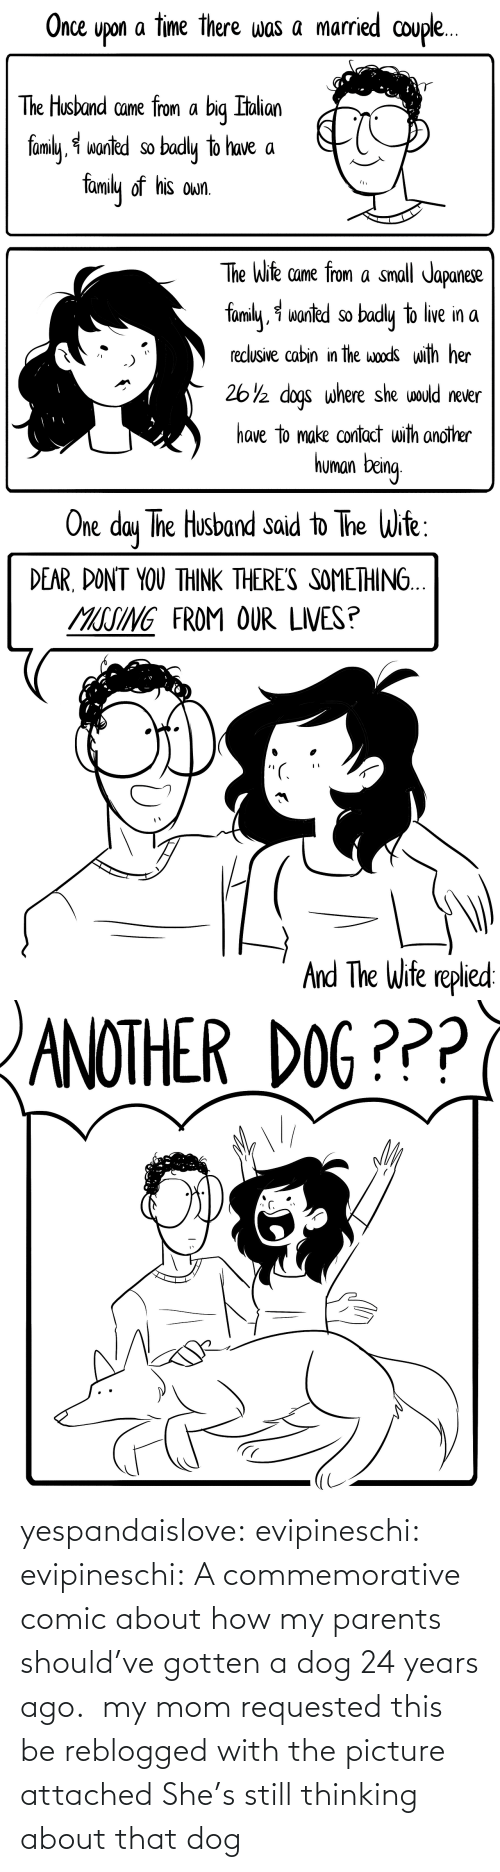 Years Ago: yespandaislove: evipineschi:  evipineschi: A commemorative comic about how my parents should've gotten a dog 24 years ago.  my mom requested this be reblogged with the picture attached   She's still thinking about that dog